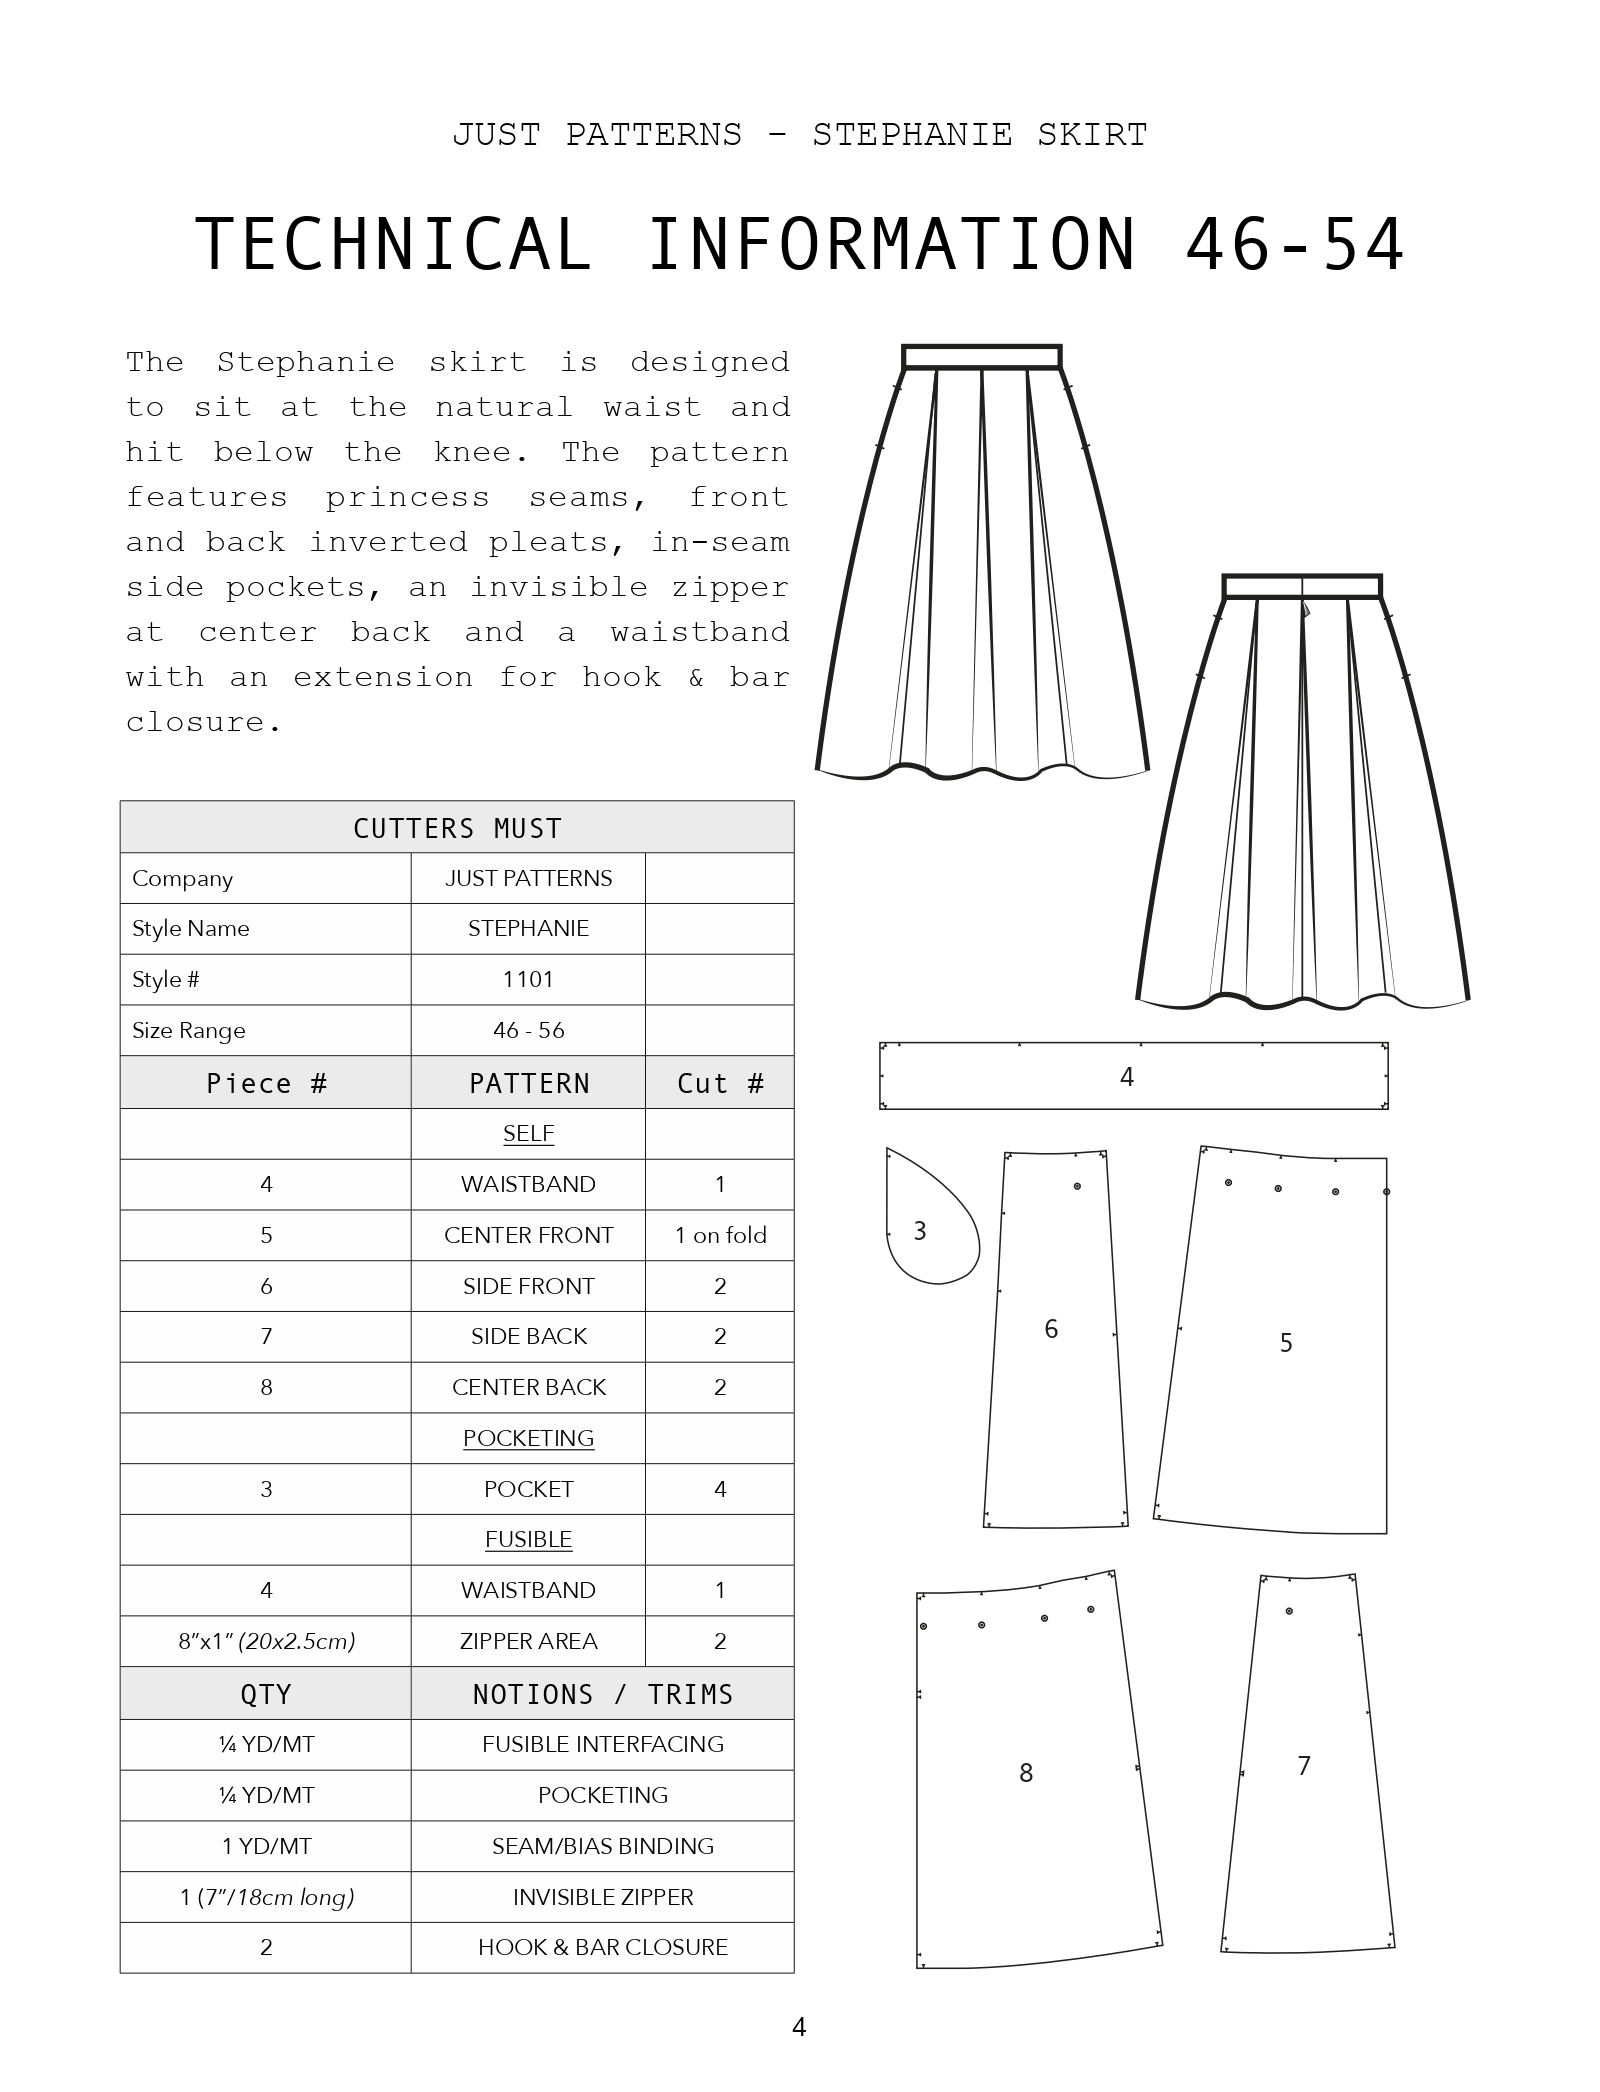 Just Patterns - Stephanie Skirt Instructions_page-0005.jpg